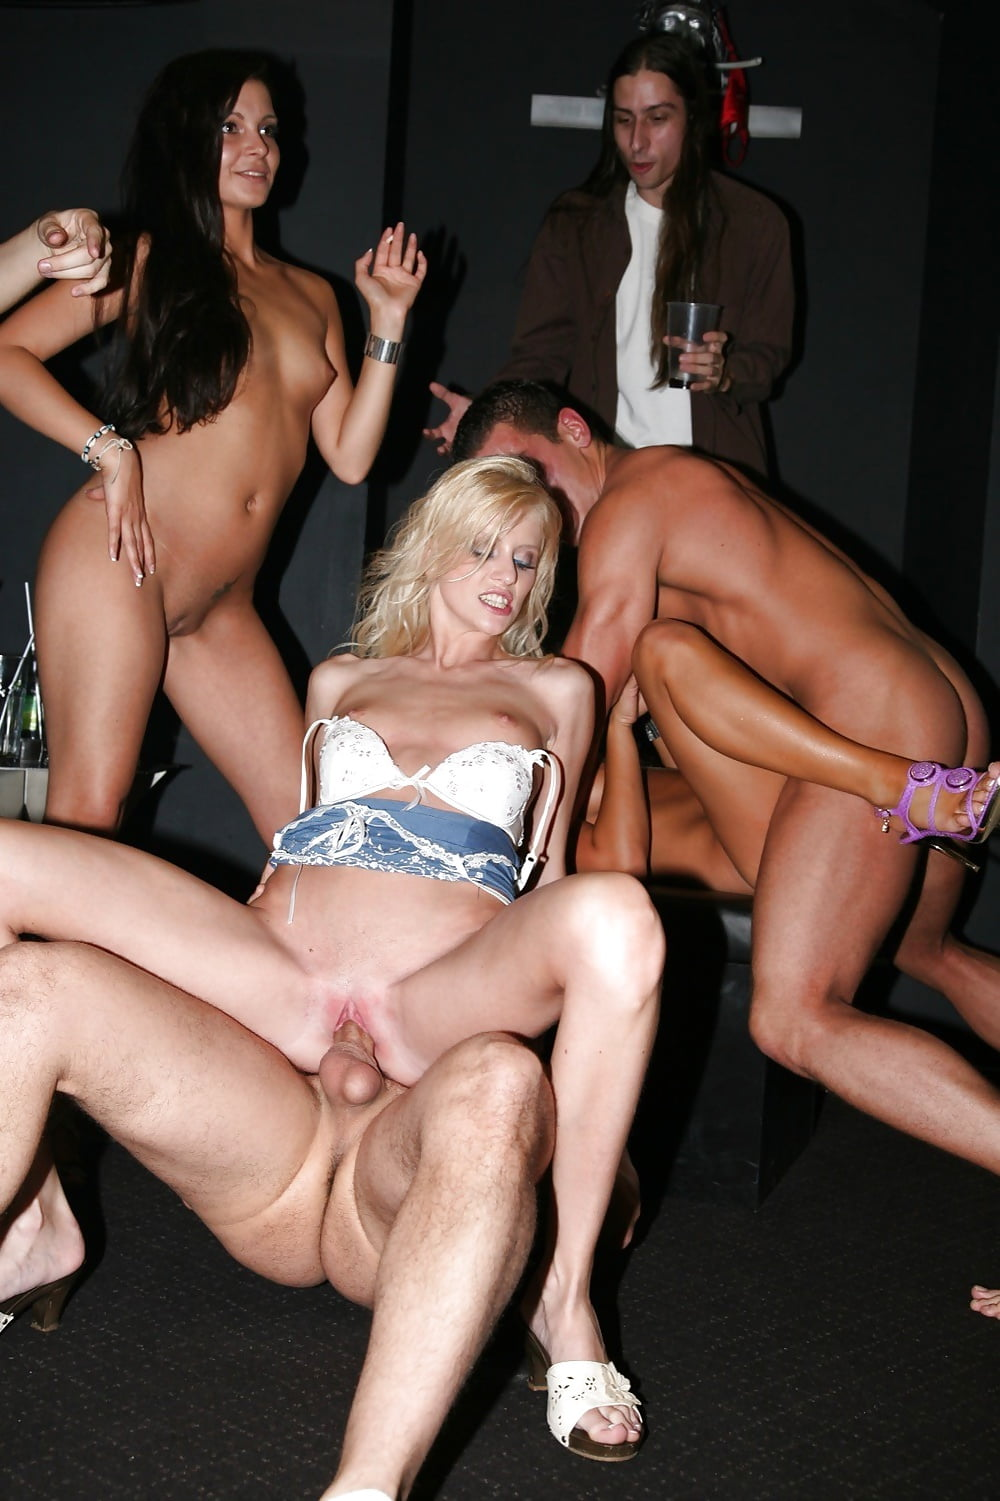 Drunk Sex Parties Pics, Free Party Porn Galleries